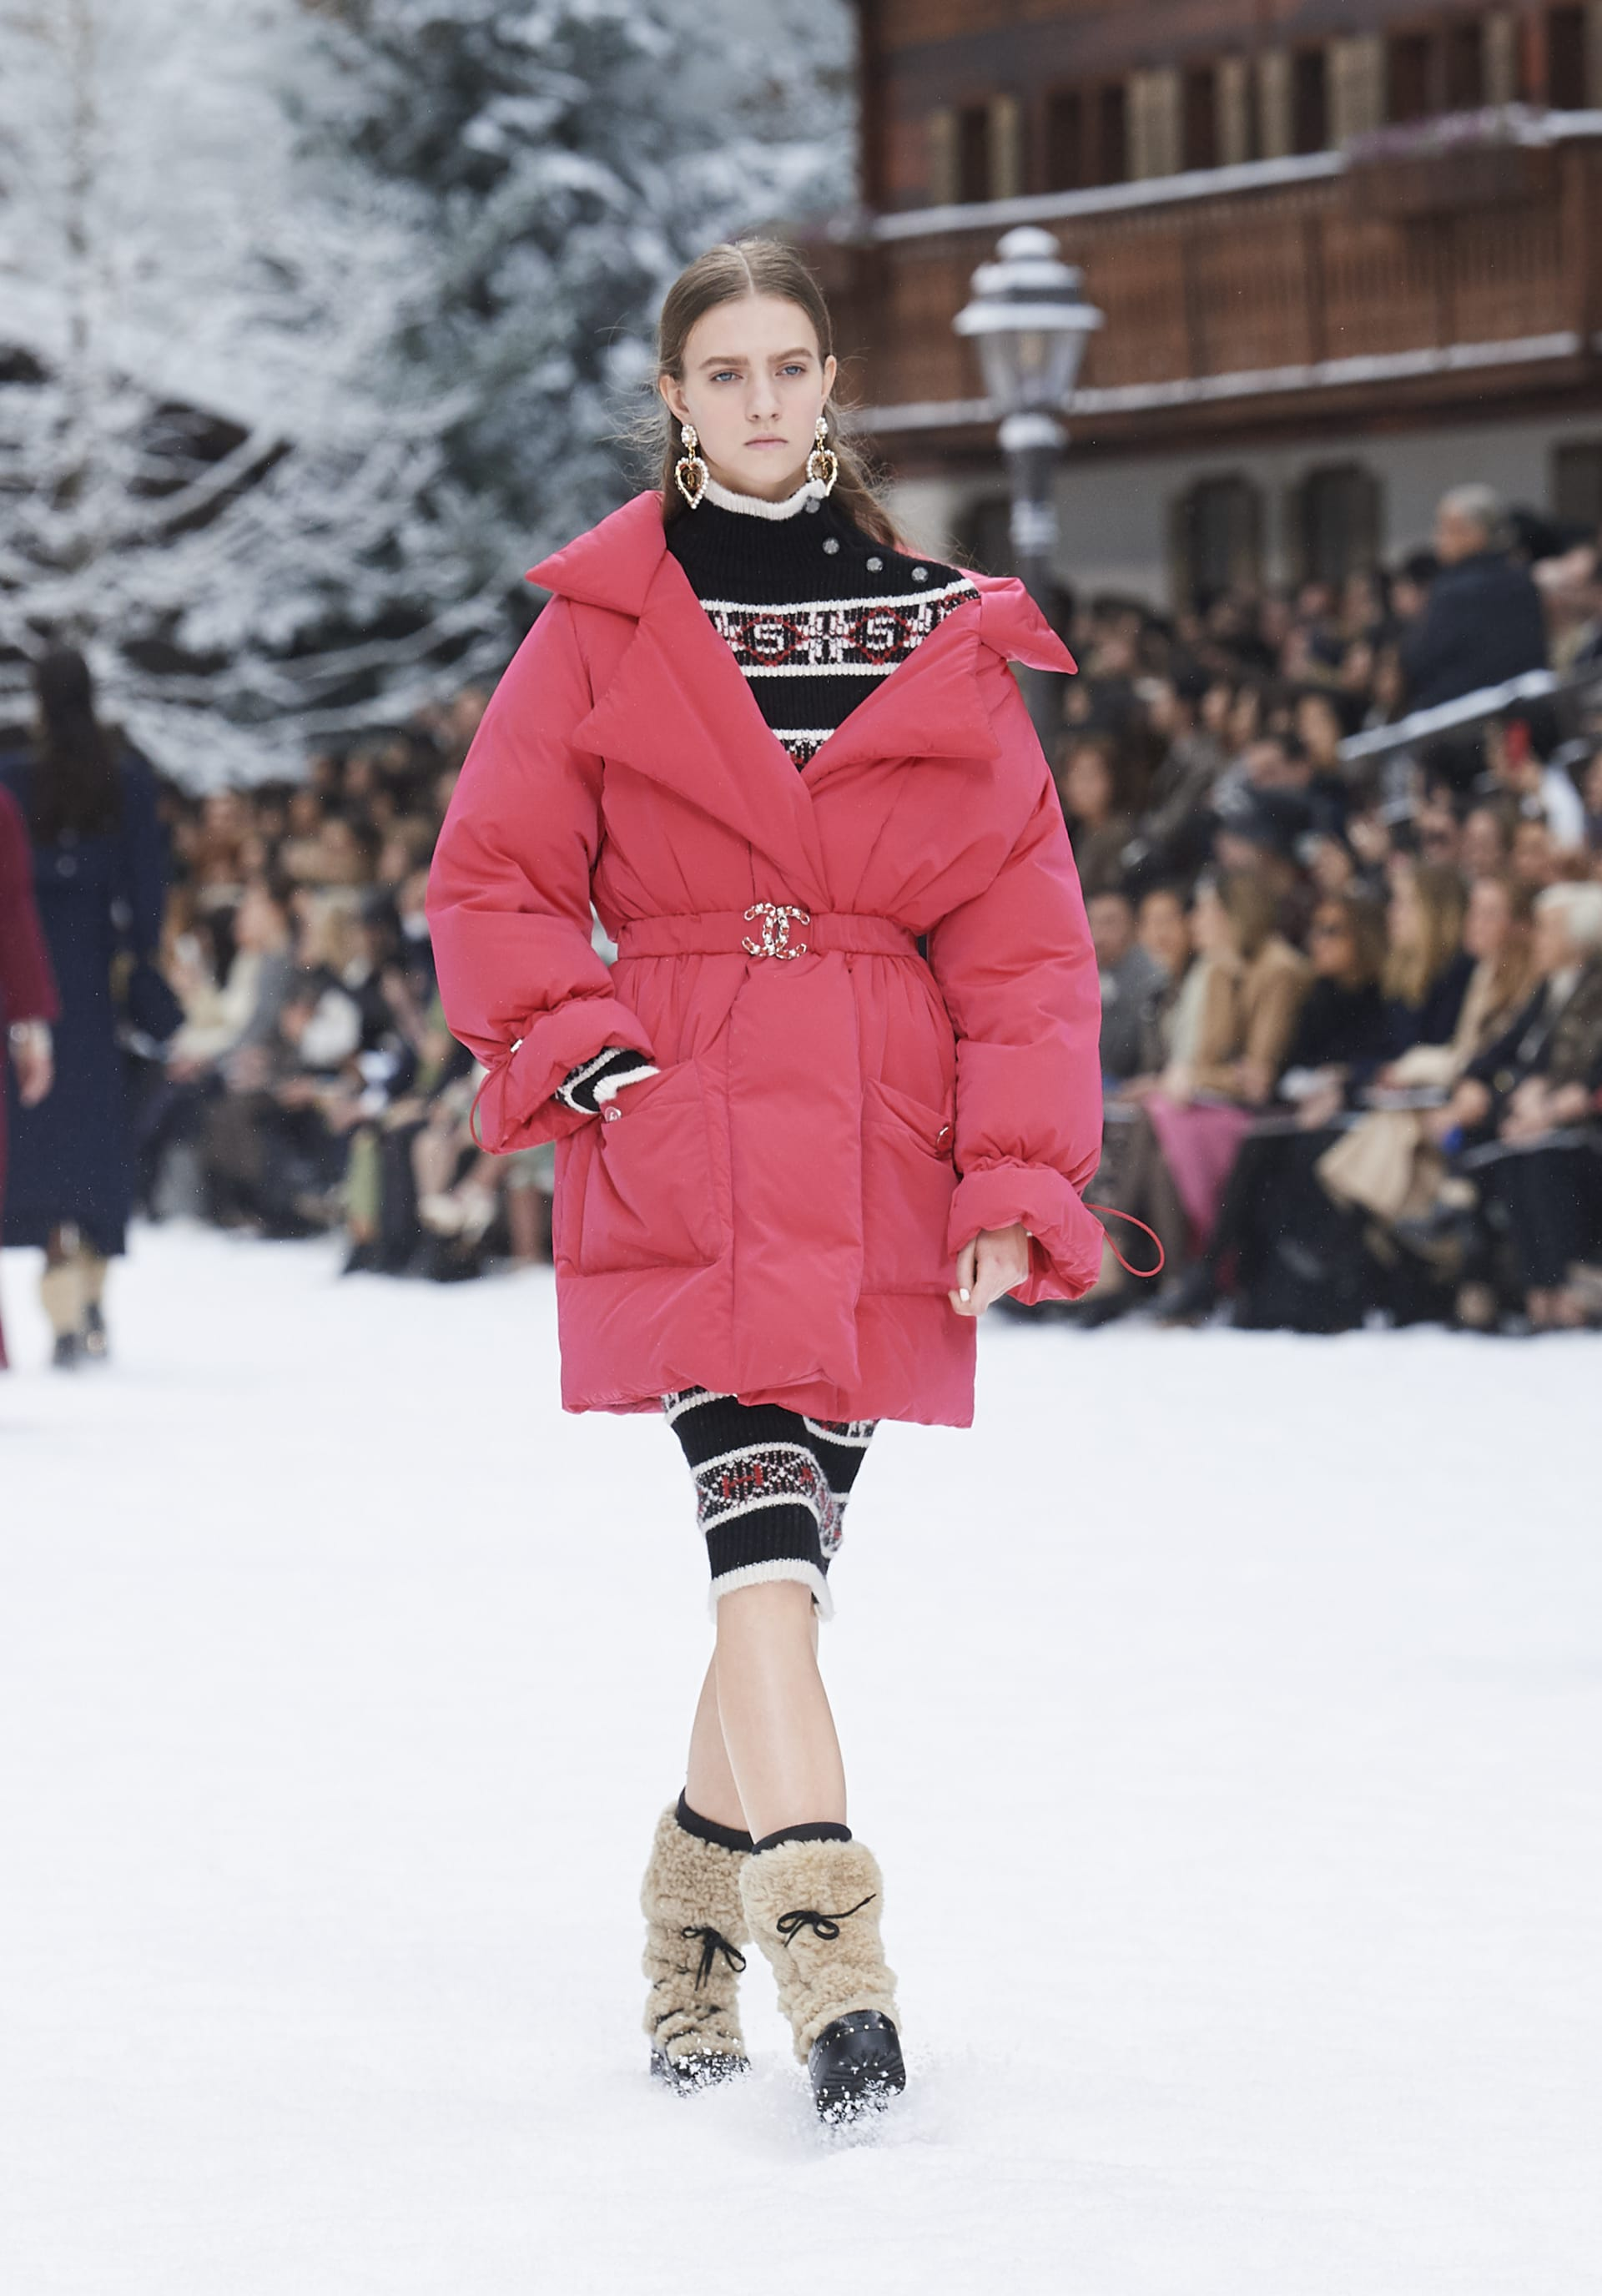 View 1 - Look 45 - Fall-Winter 2019/20